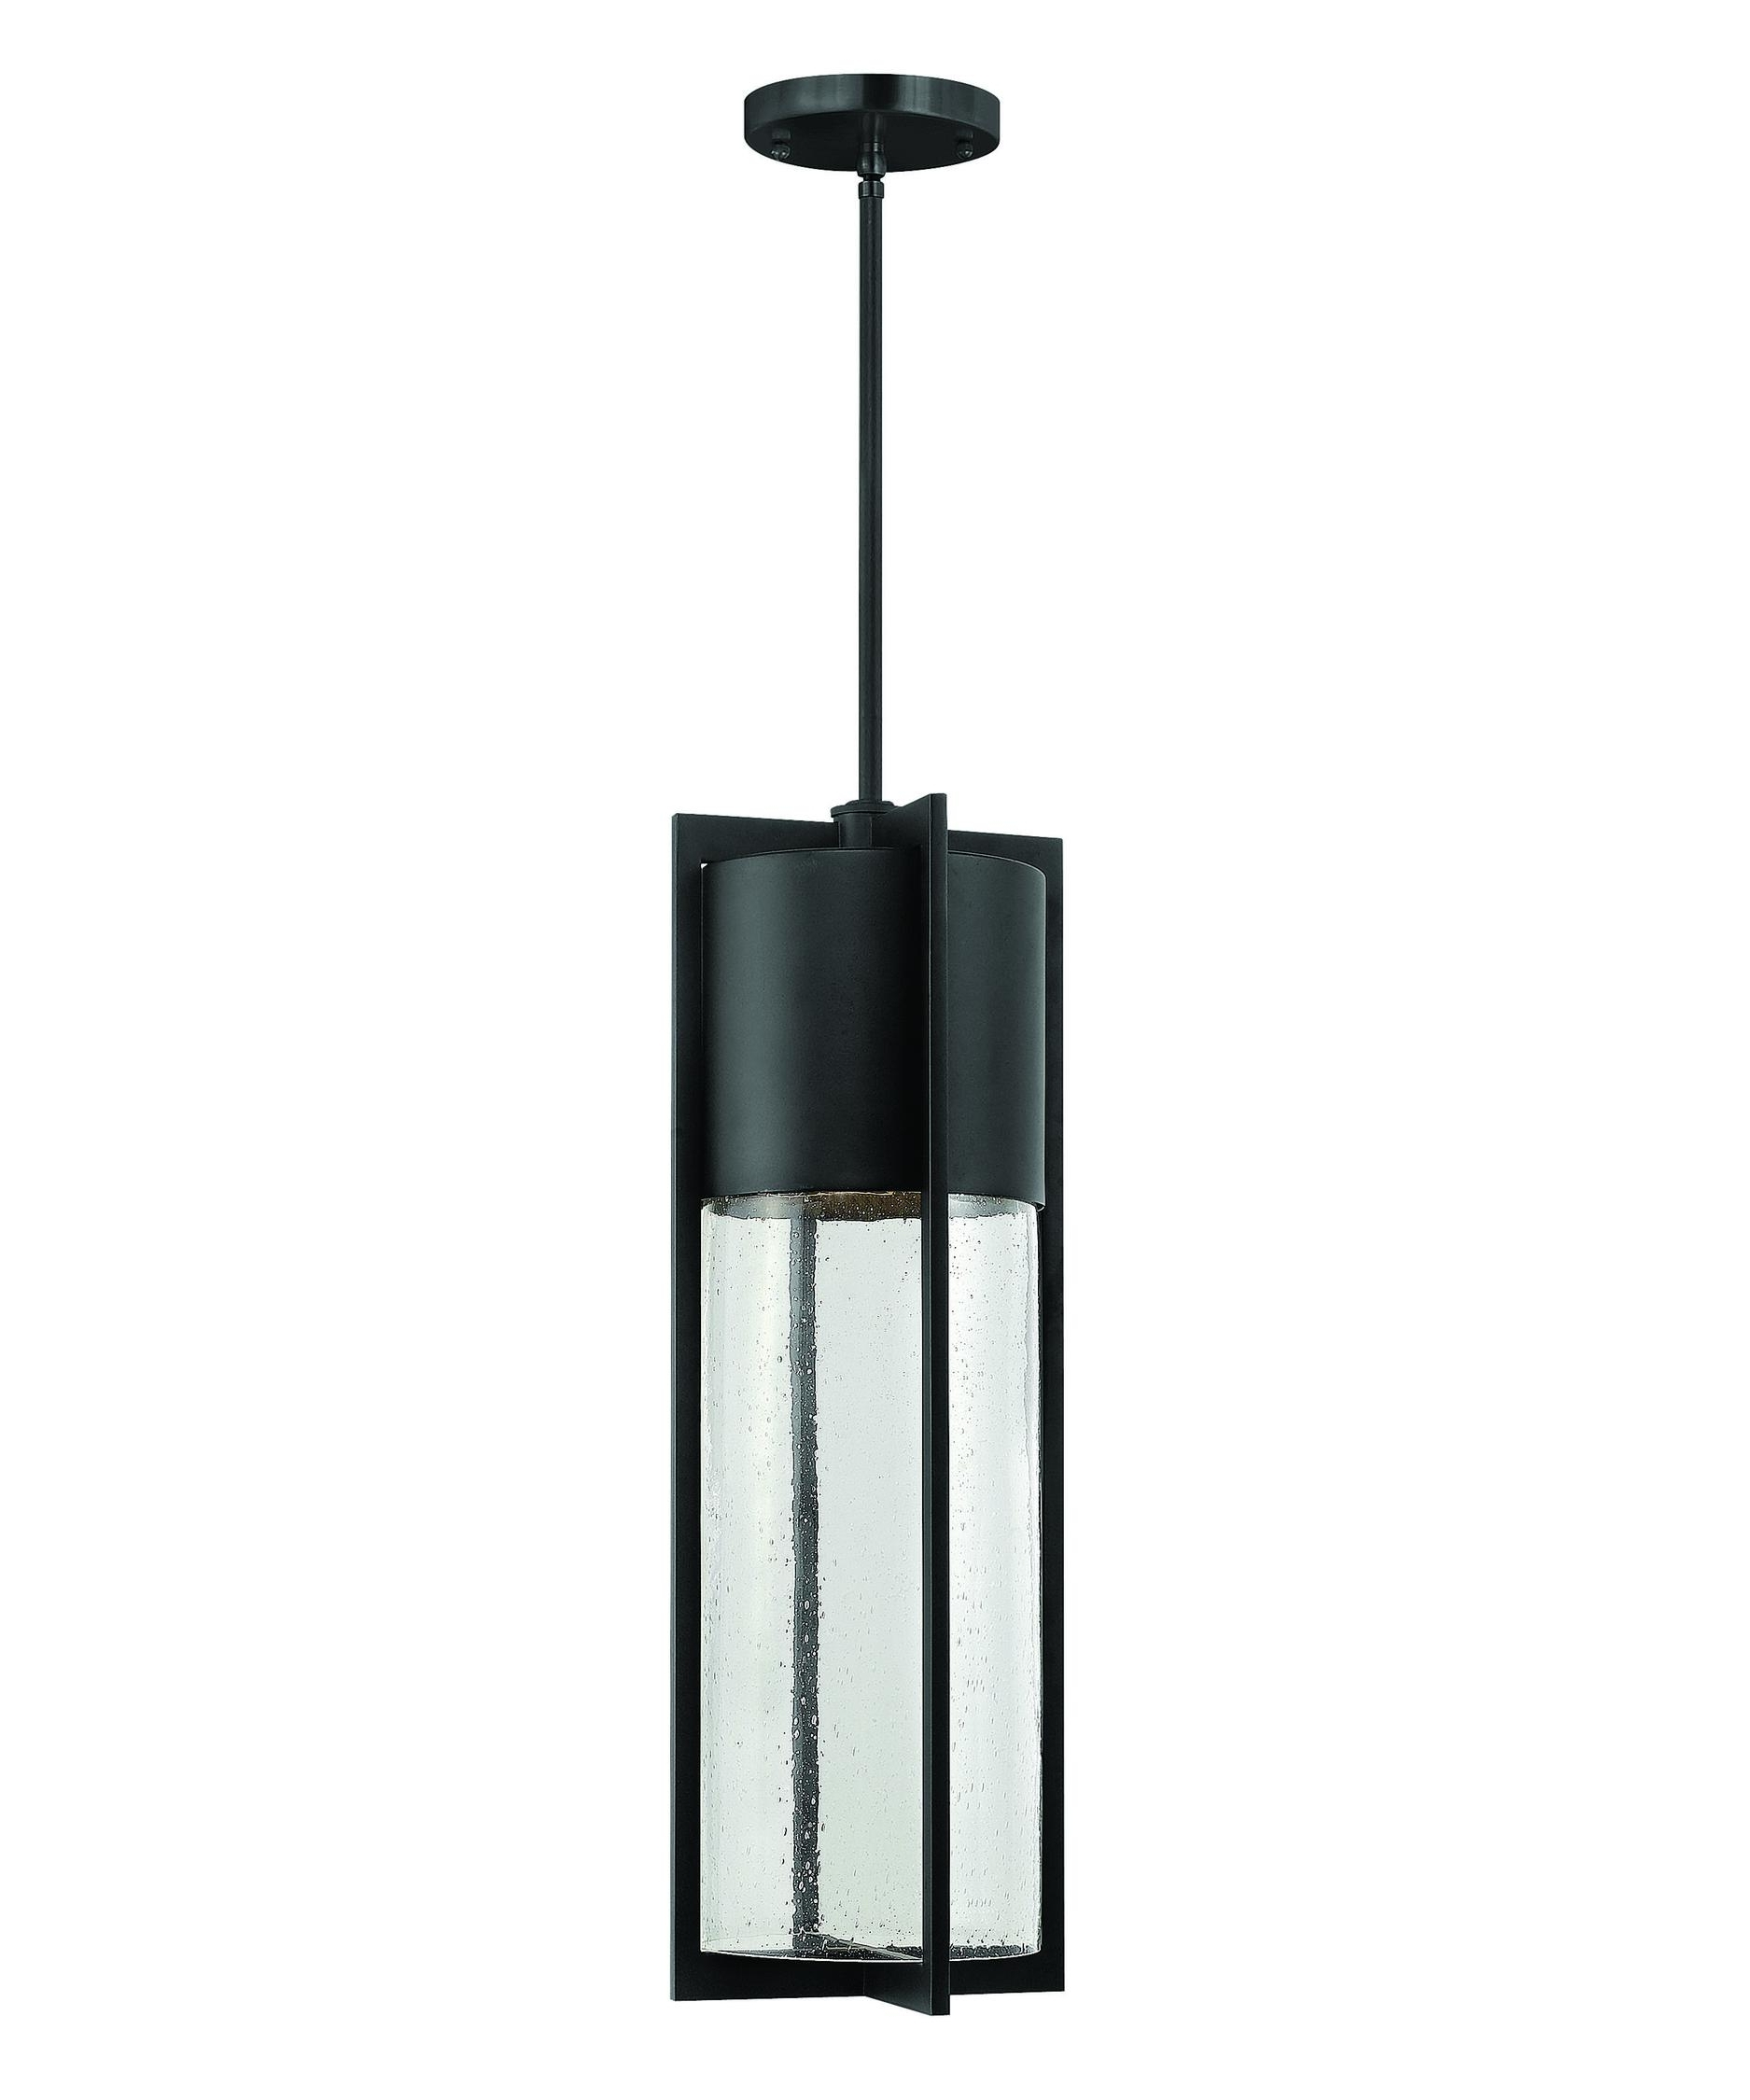 Hinkley Lighting 1328 Shelter 8 Inch Wide 1 Light Outdoor Hanging With Recent Hinkley Outdoor Hanging Lights (View 4 of 20)